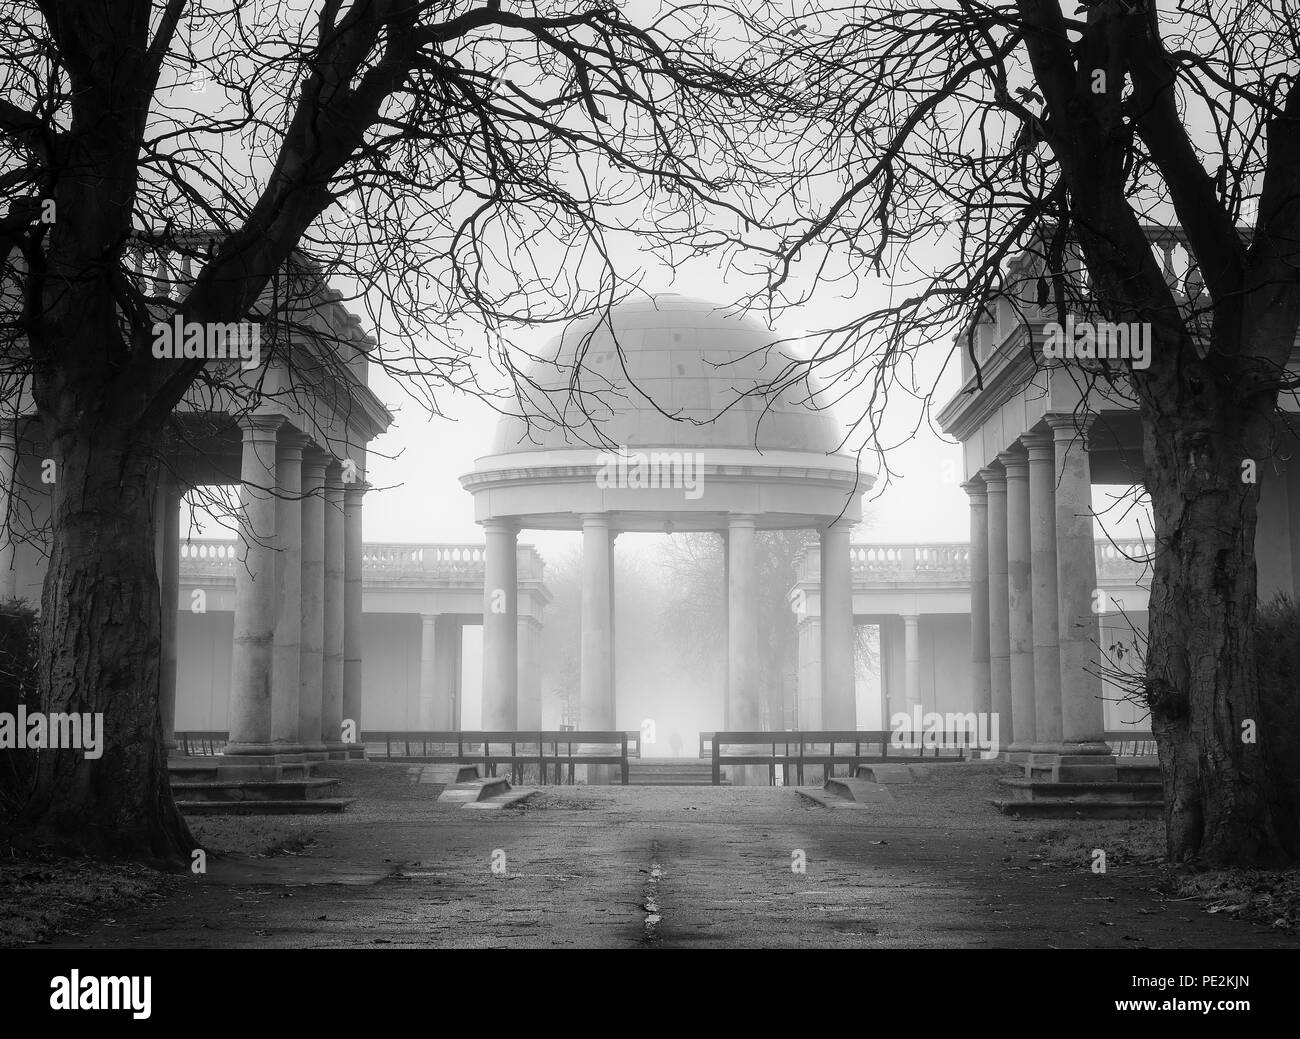 The bandstand at Eaton Park on a misty morning. - Stock Image